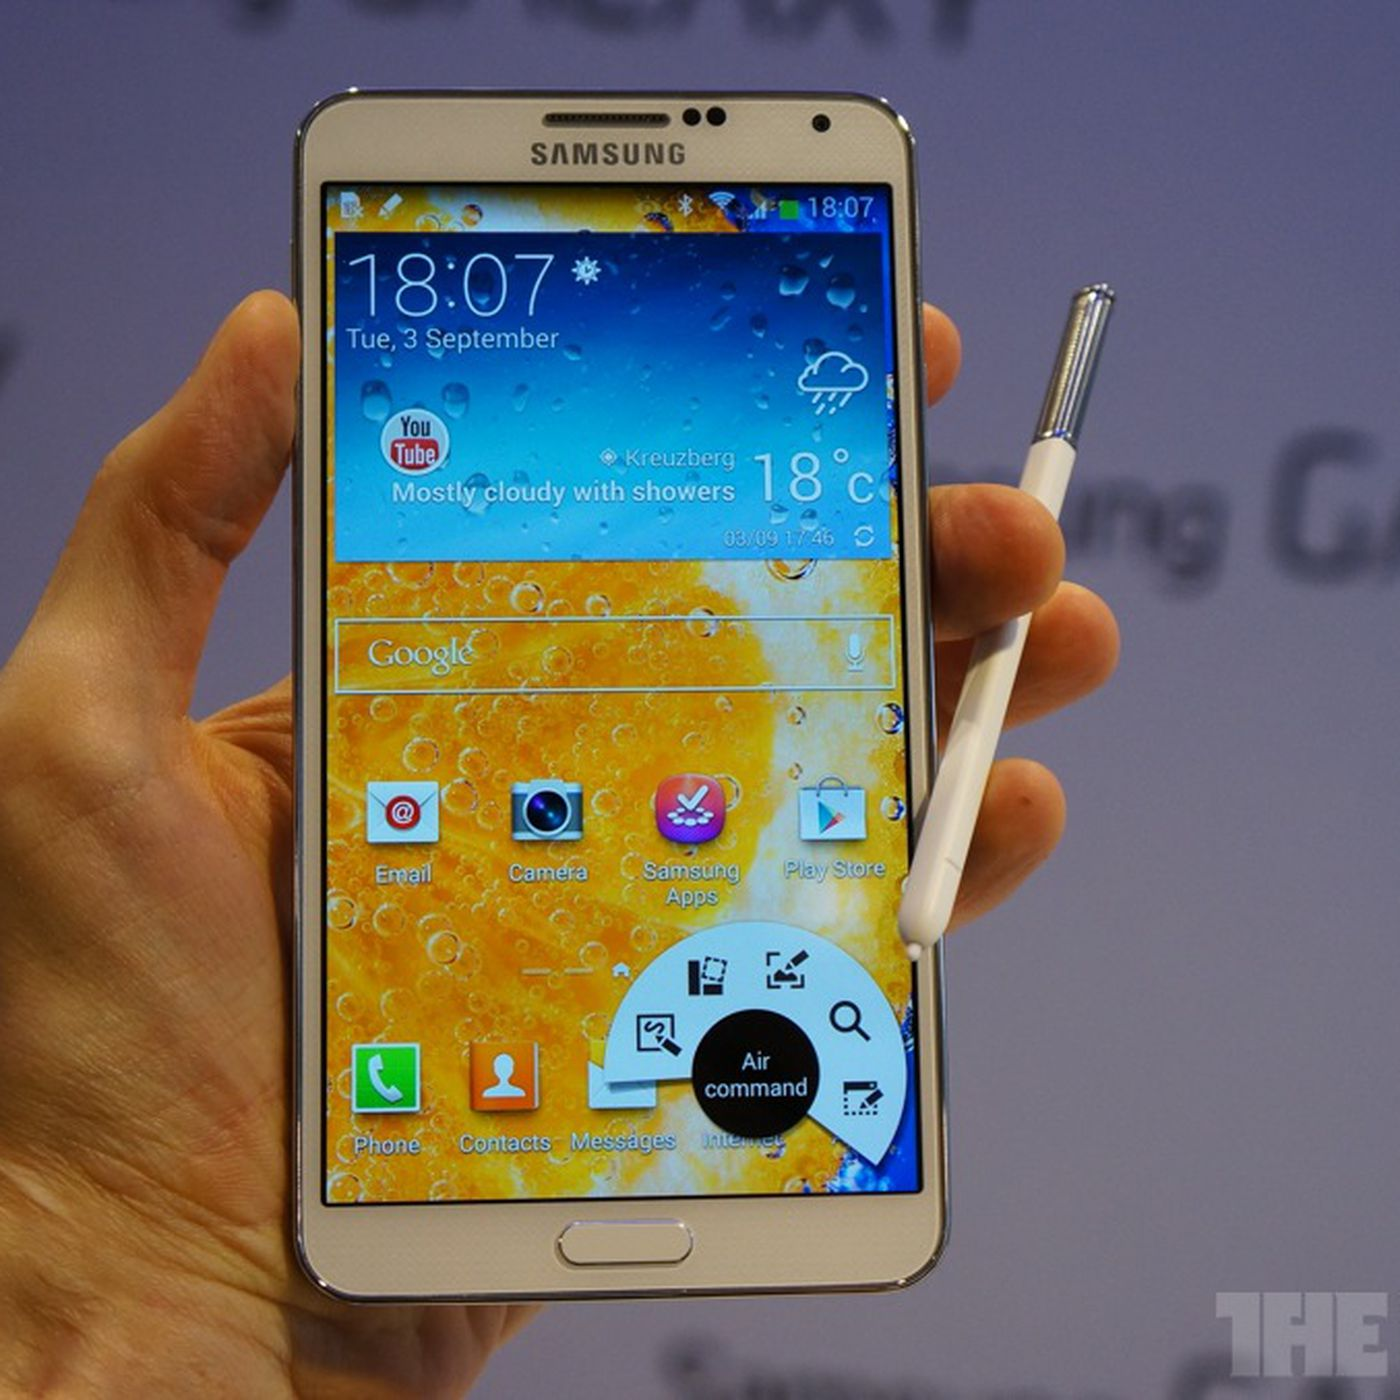 Samsung's Galaxy Note 3 is bigger, faster, thinner, and